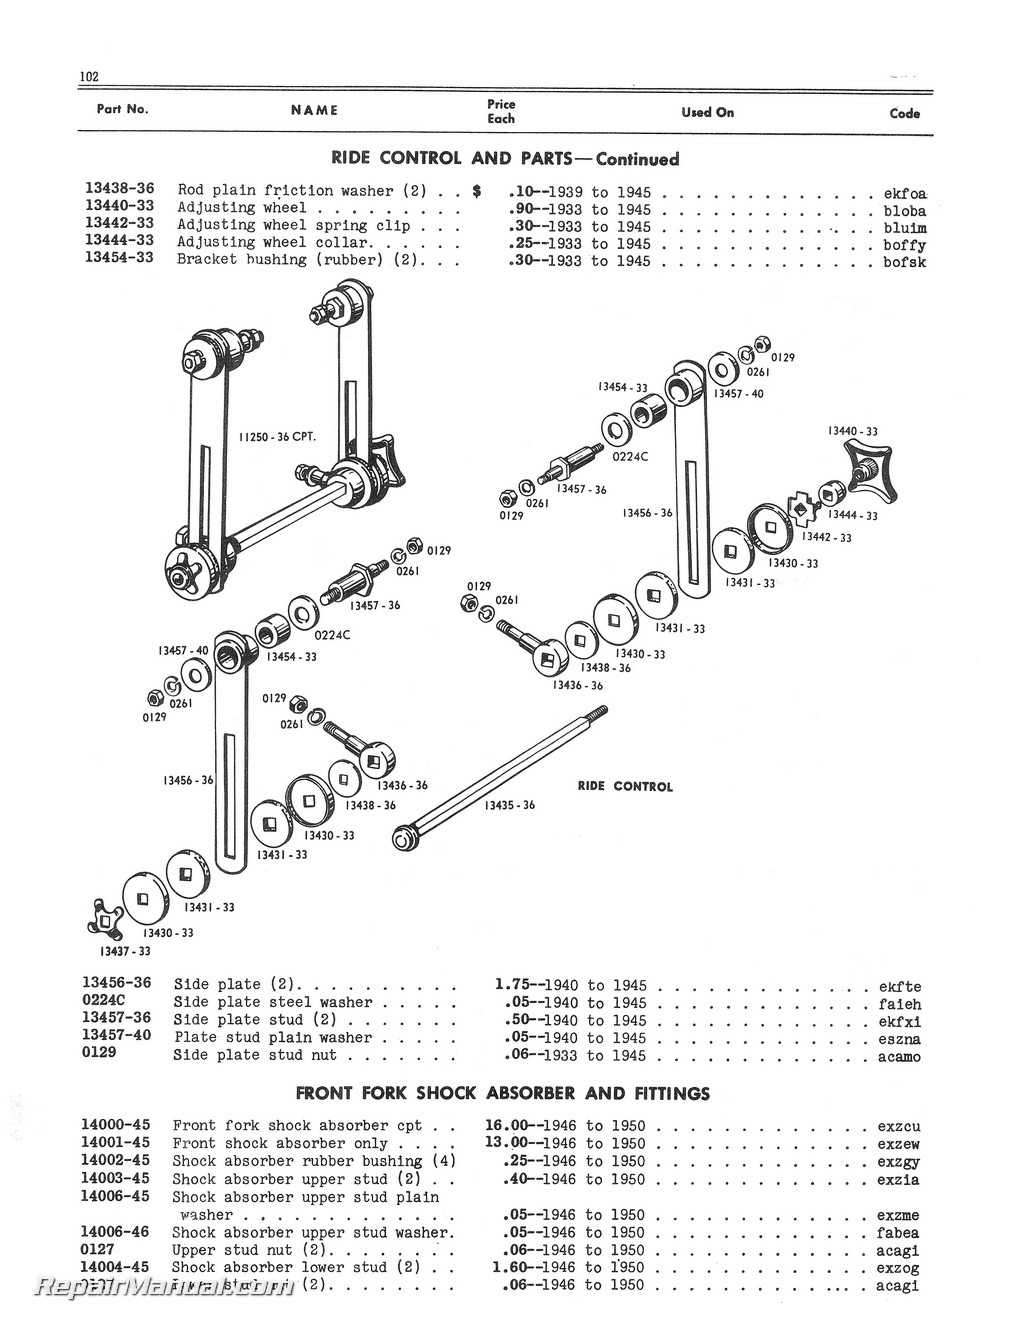 1950 Harley Davidson Wiring Diagram Trusted Diagrams 1975 Sportster Pdf Wire 1957 Servi Car Free Download U2022 Oasis Dl Co Motorcycle